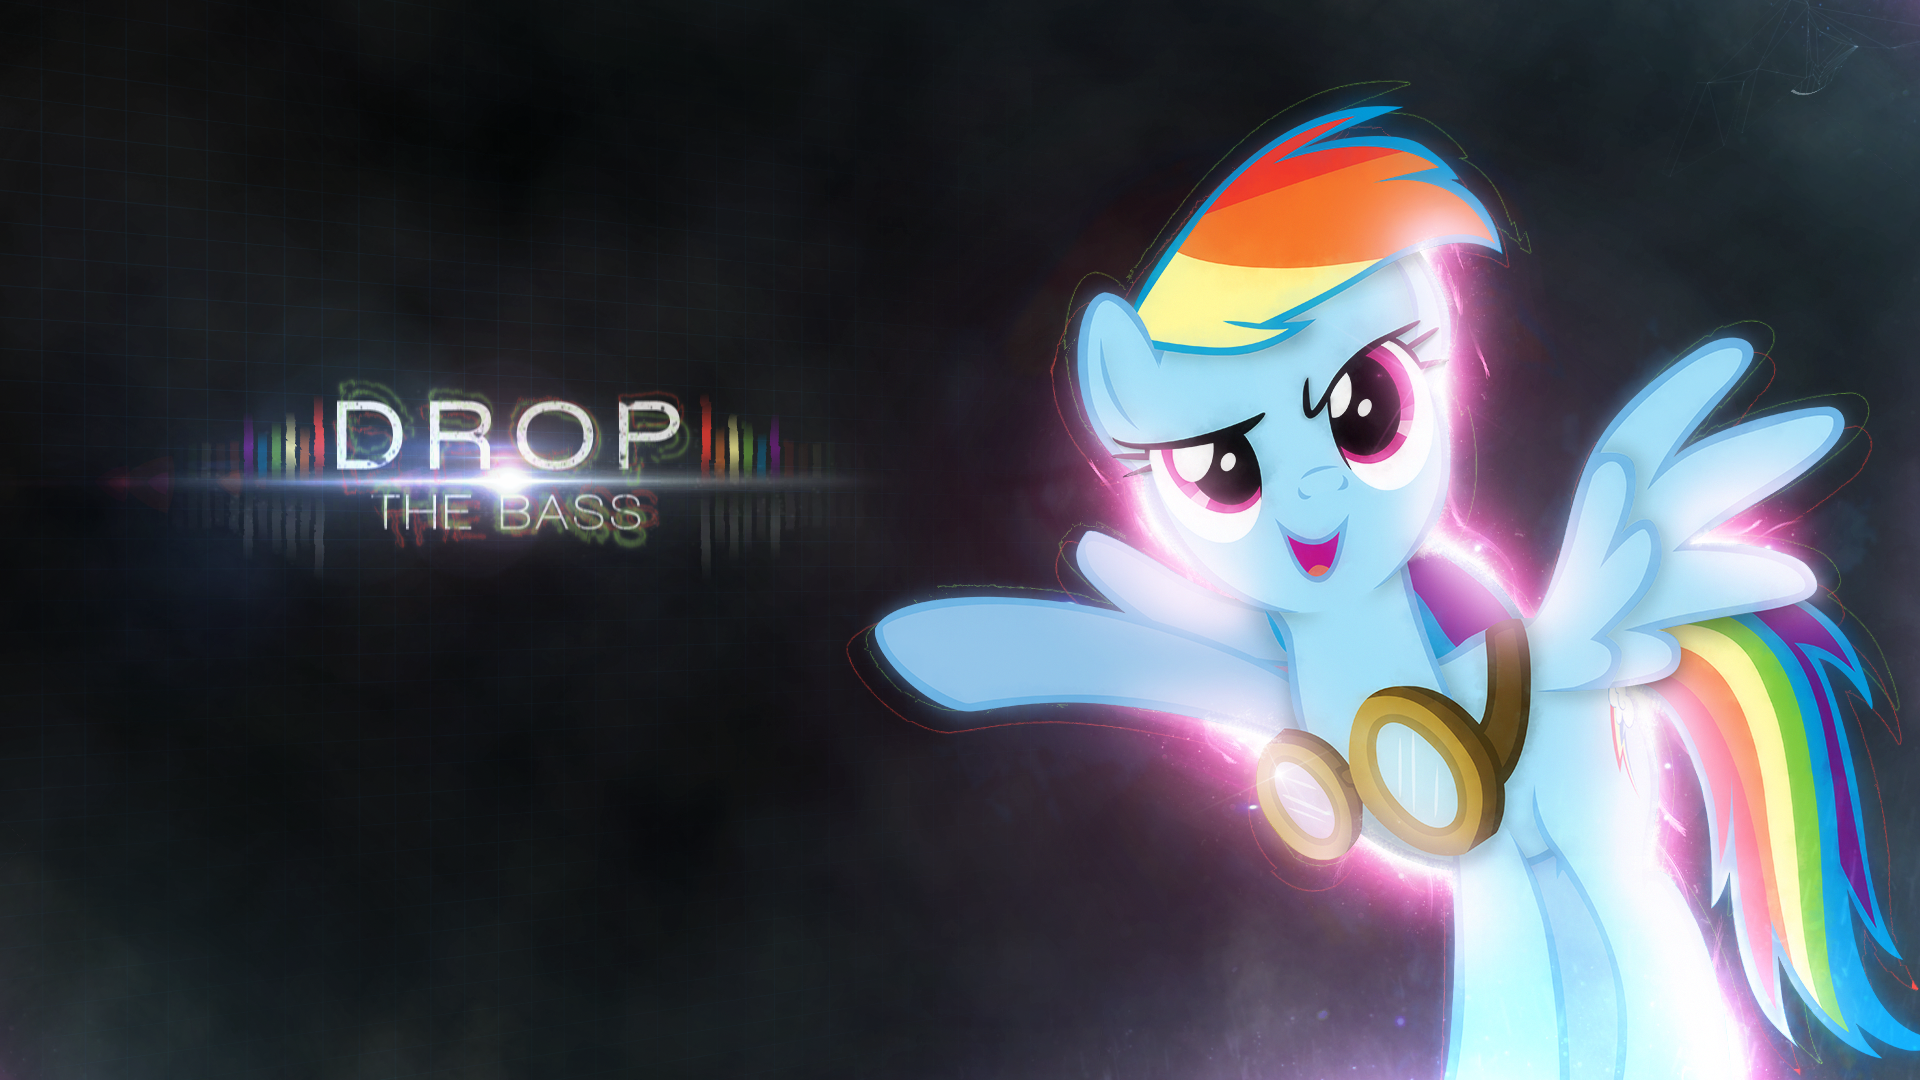 Wallpaper ~ Drop The Bass. by Mackaged and Somepony